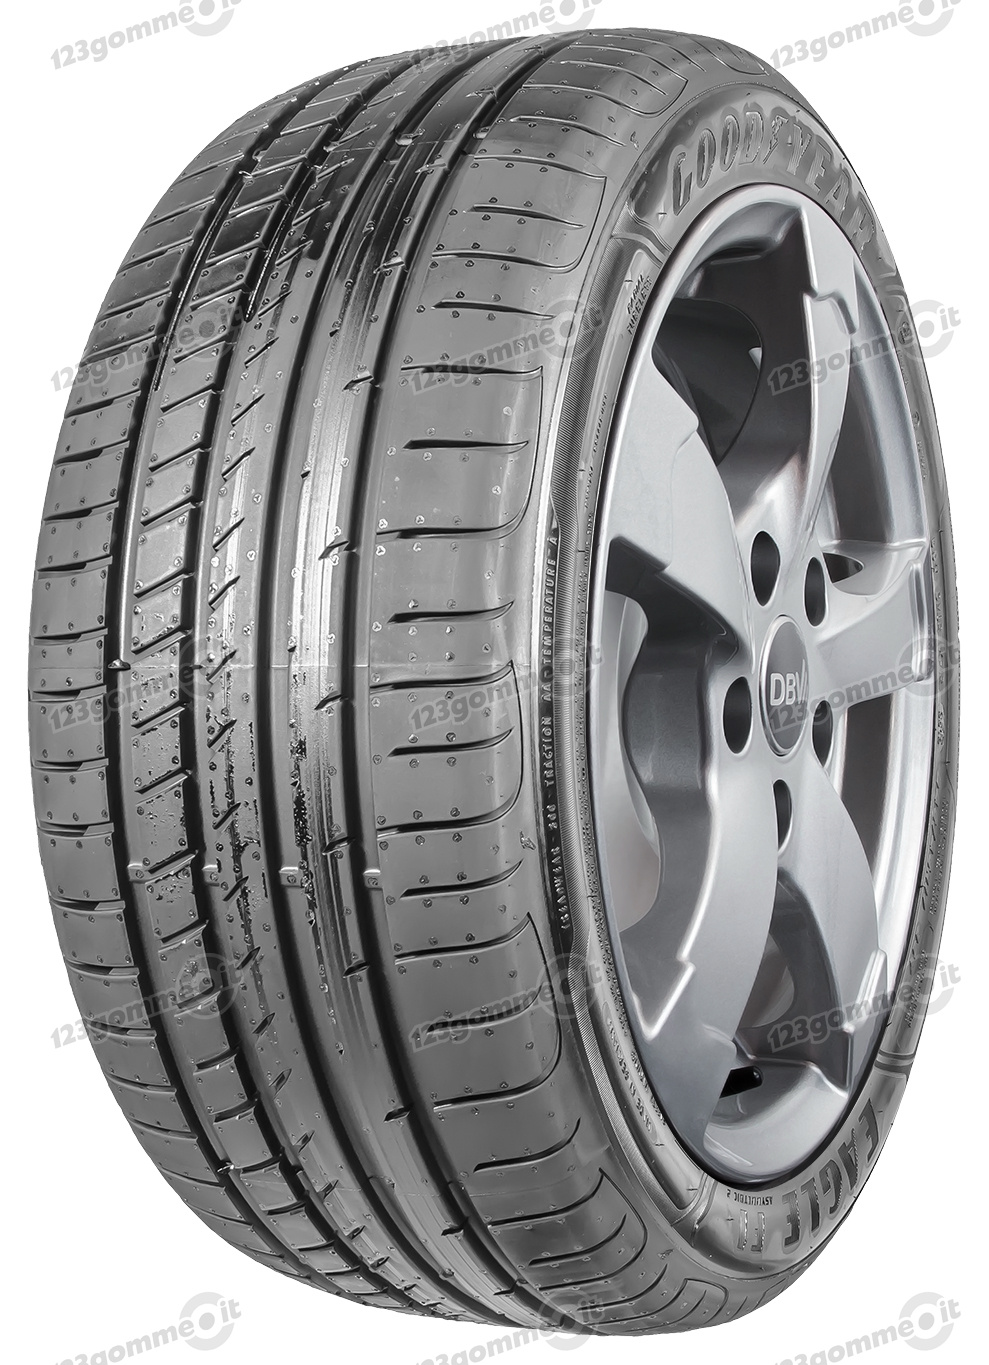 235/40 R18 95Y Eagle F1 Asymmetric 2 XL  Eagle F1 Asymmetric 2 XL